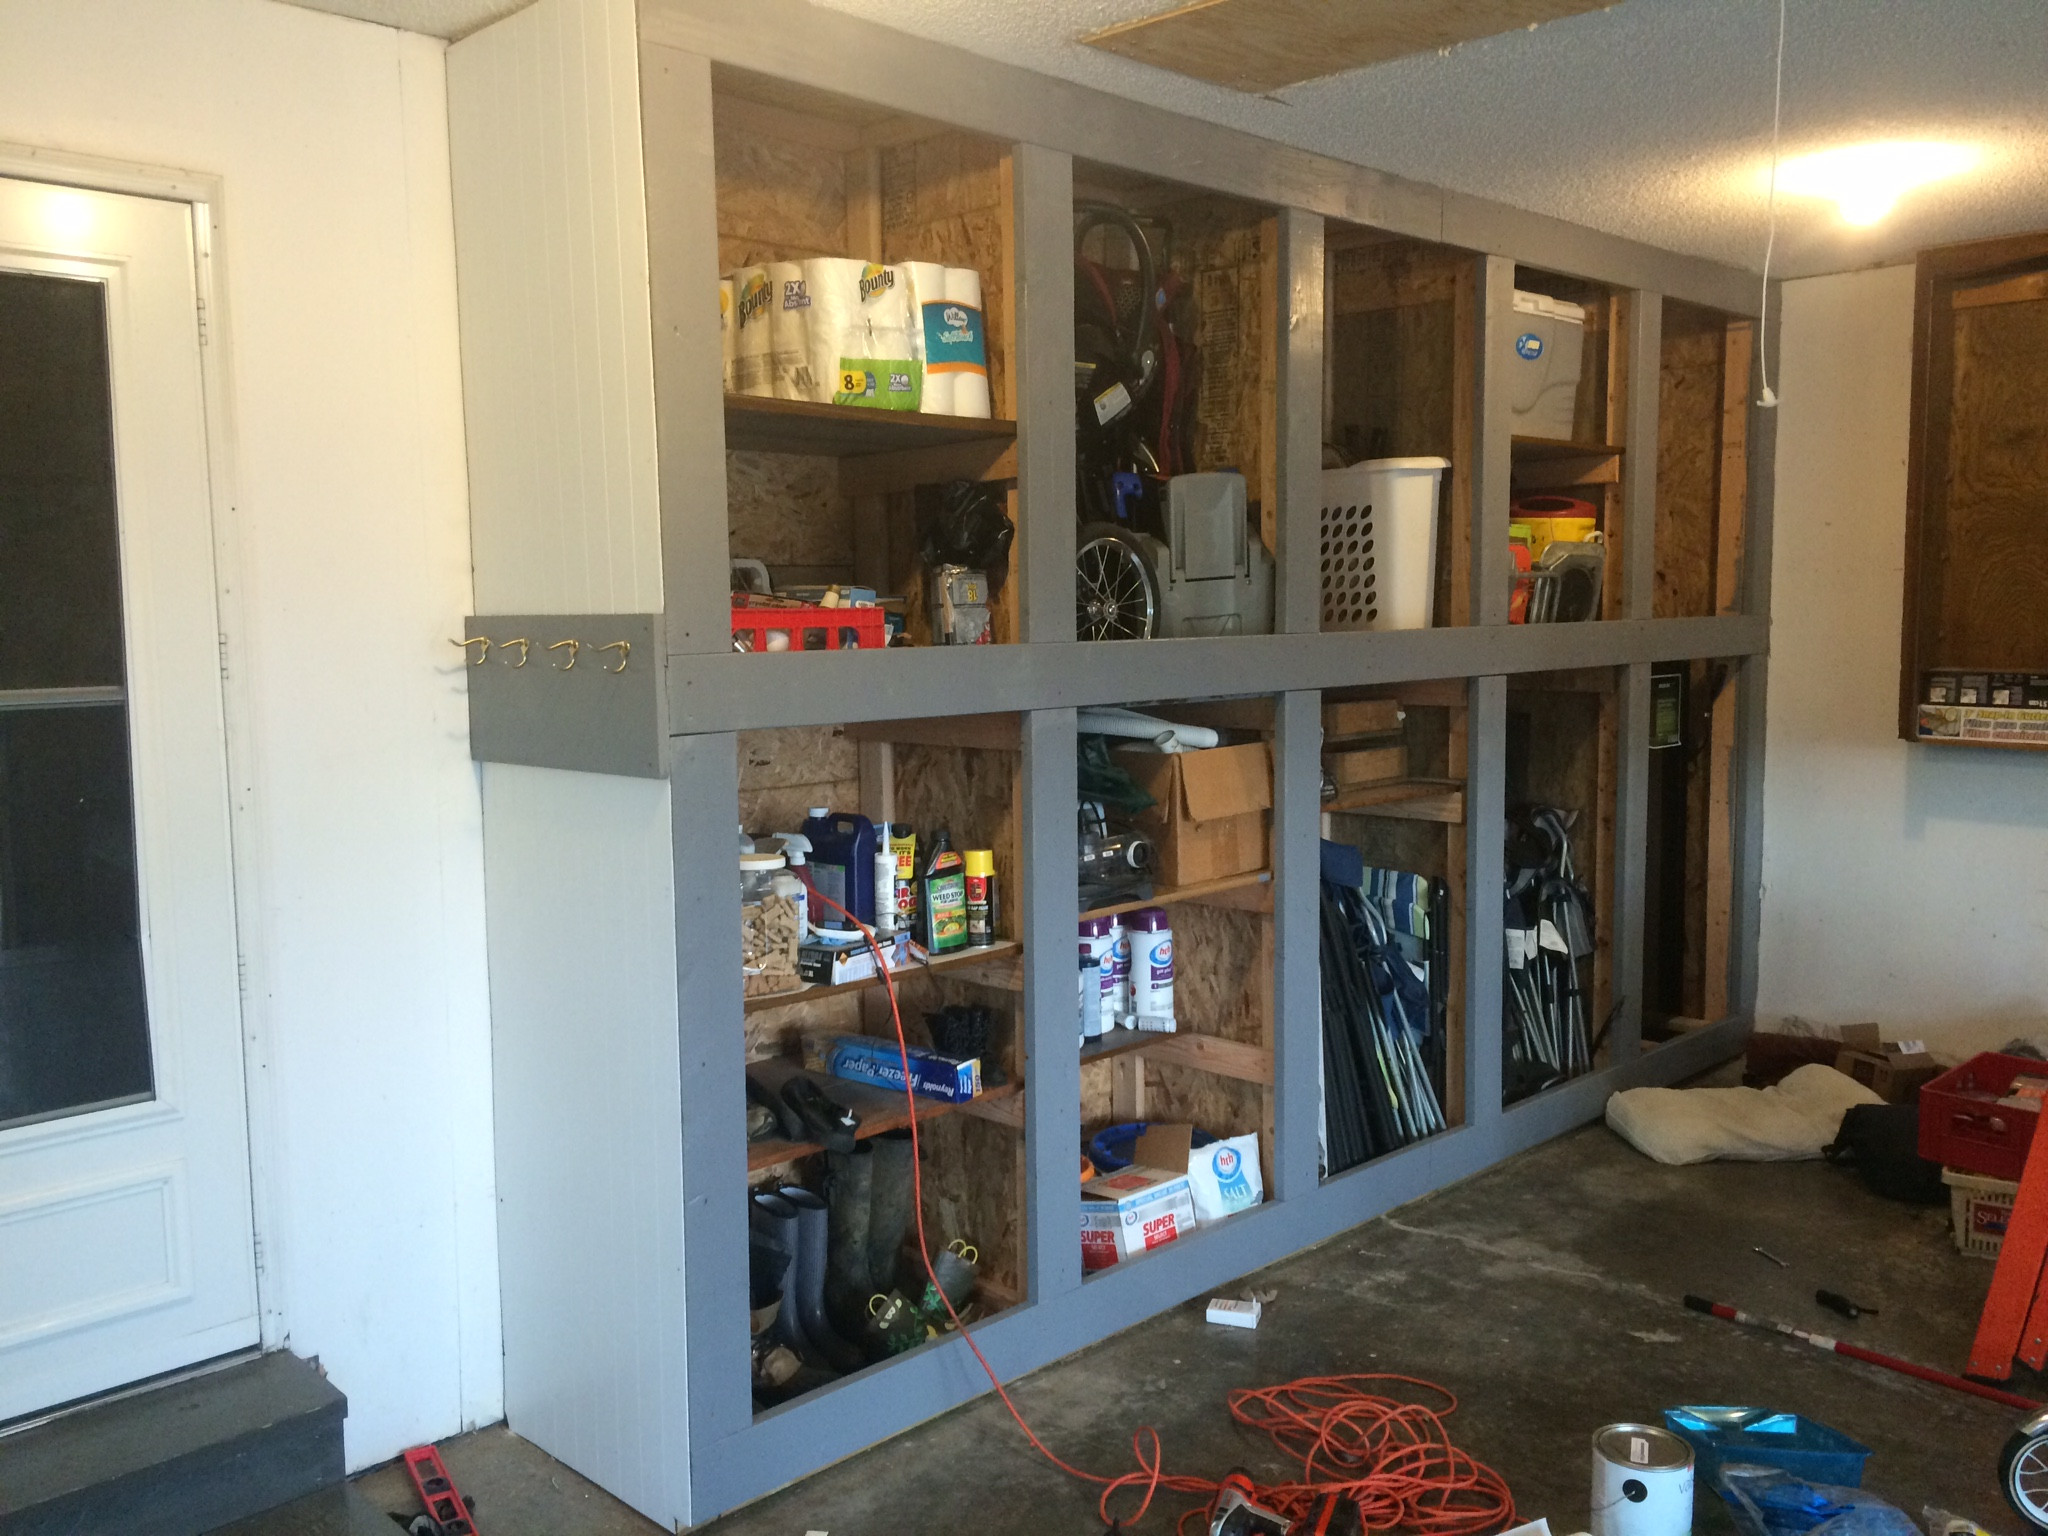 Best ideas about DIY Shop Cabinets . Save or Pin How to Plan & Build DIY Garage Storage Cabinets Now.